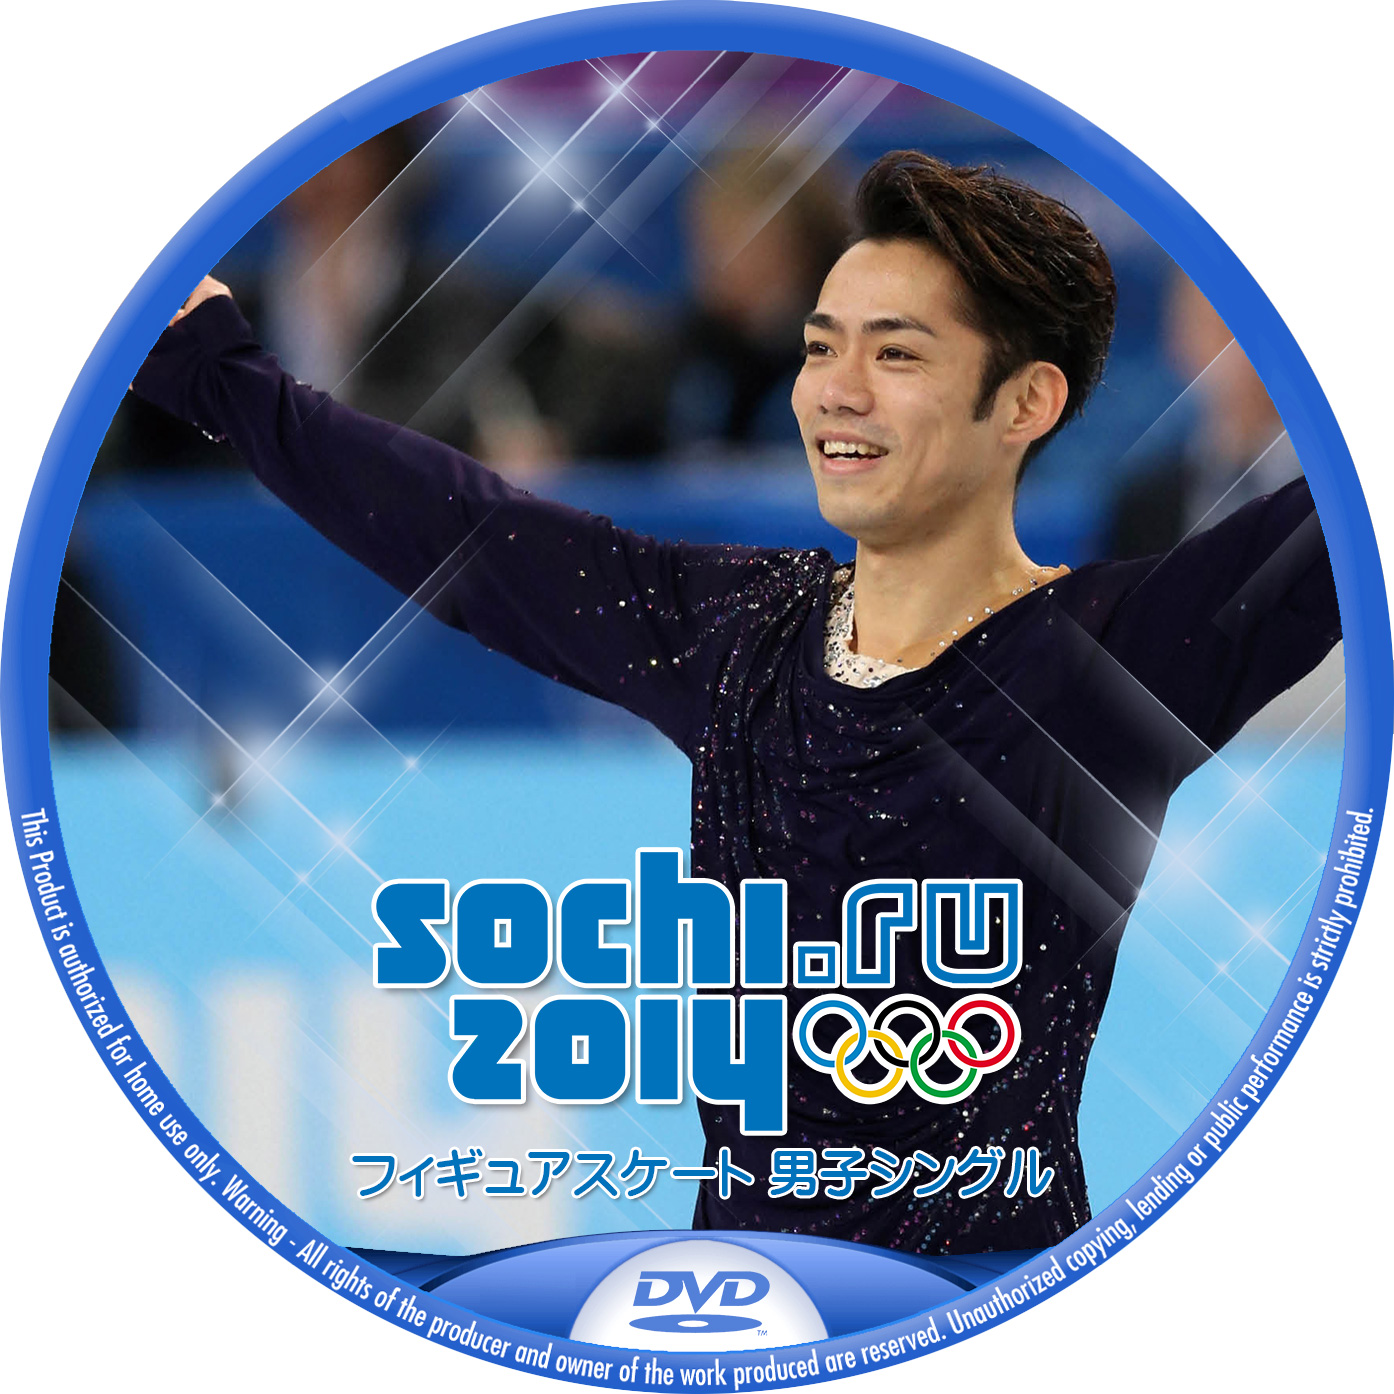 Sochi_Figure_Mens-DVD4